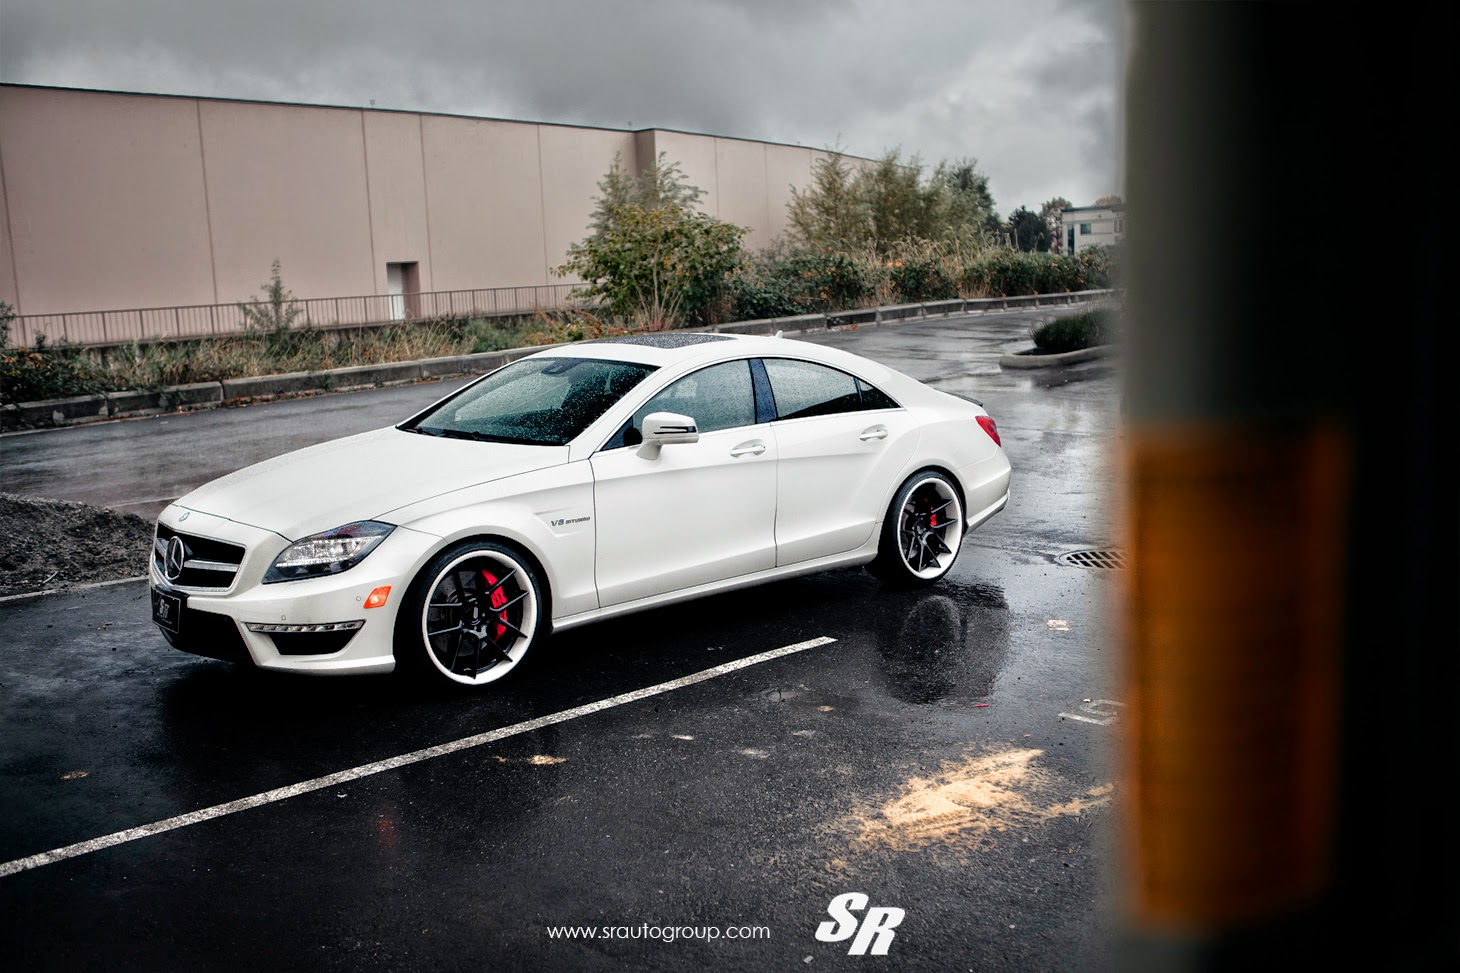 cls63 modified